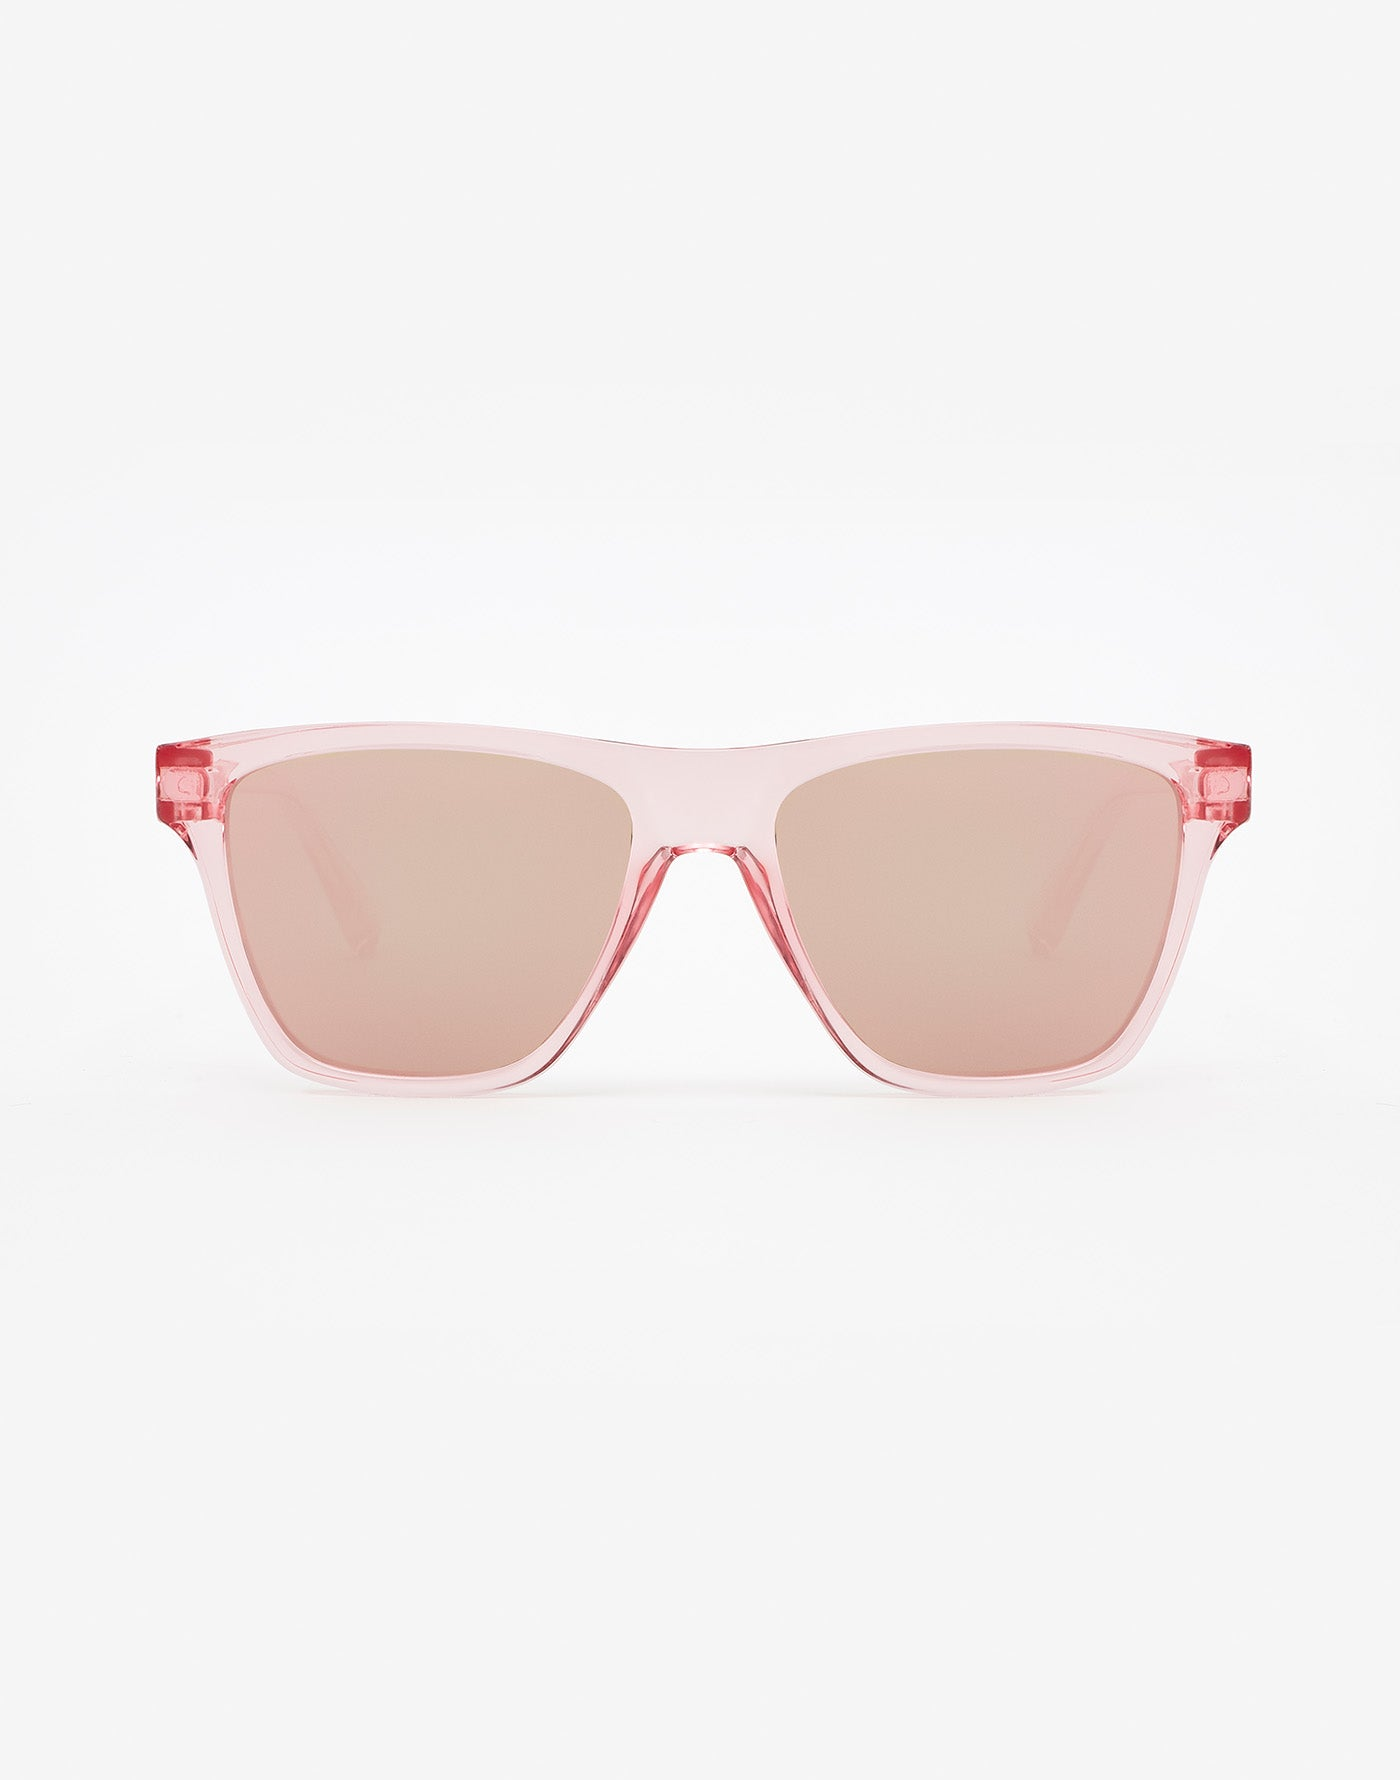 Paula Echevarría x Hawkers · Air Pink ONE LS